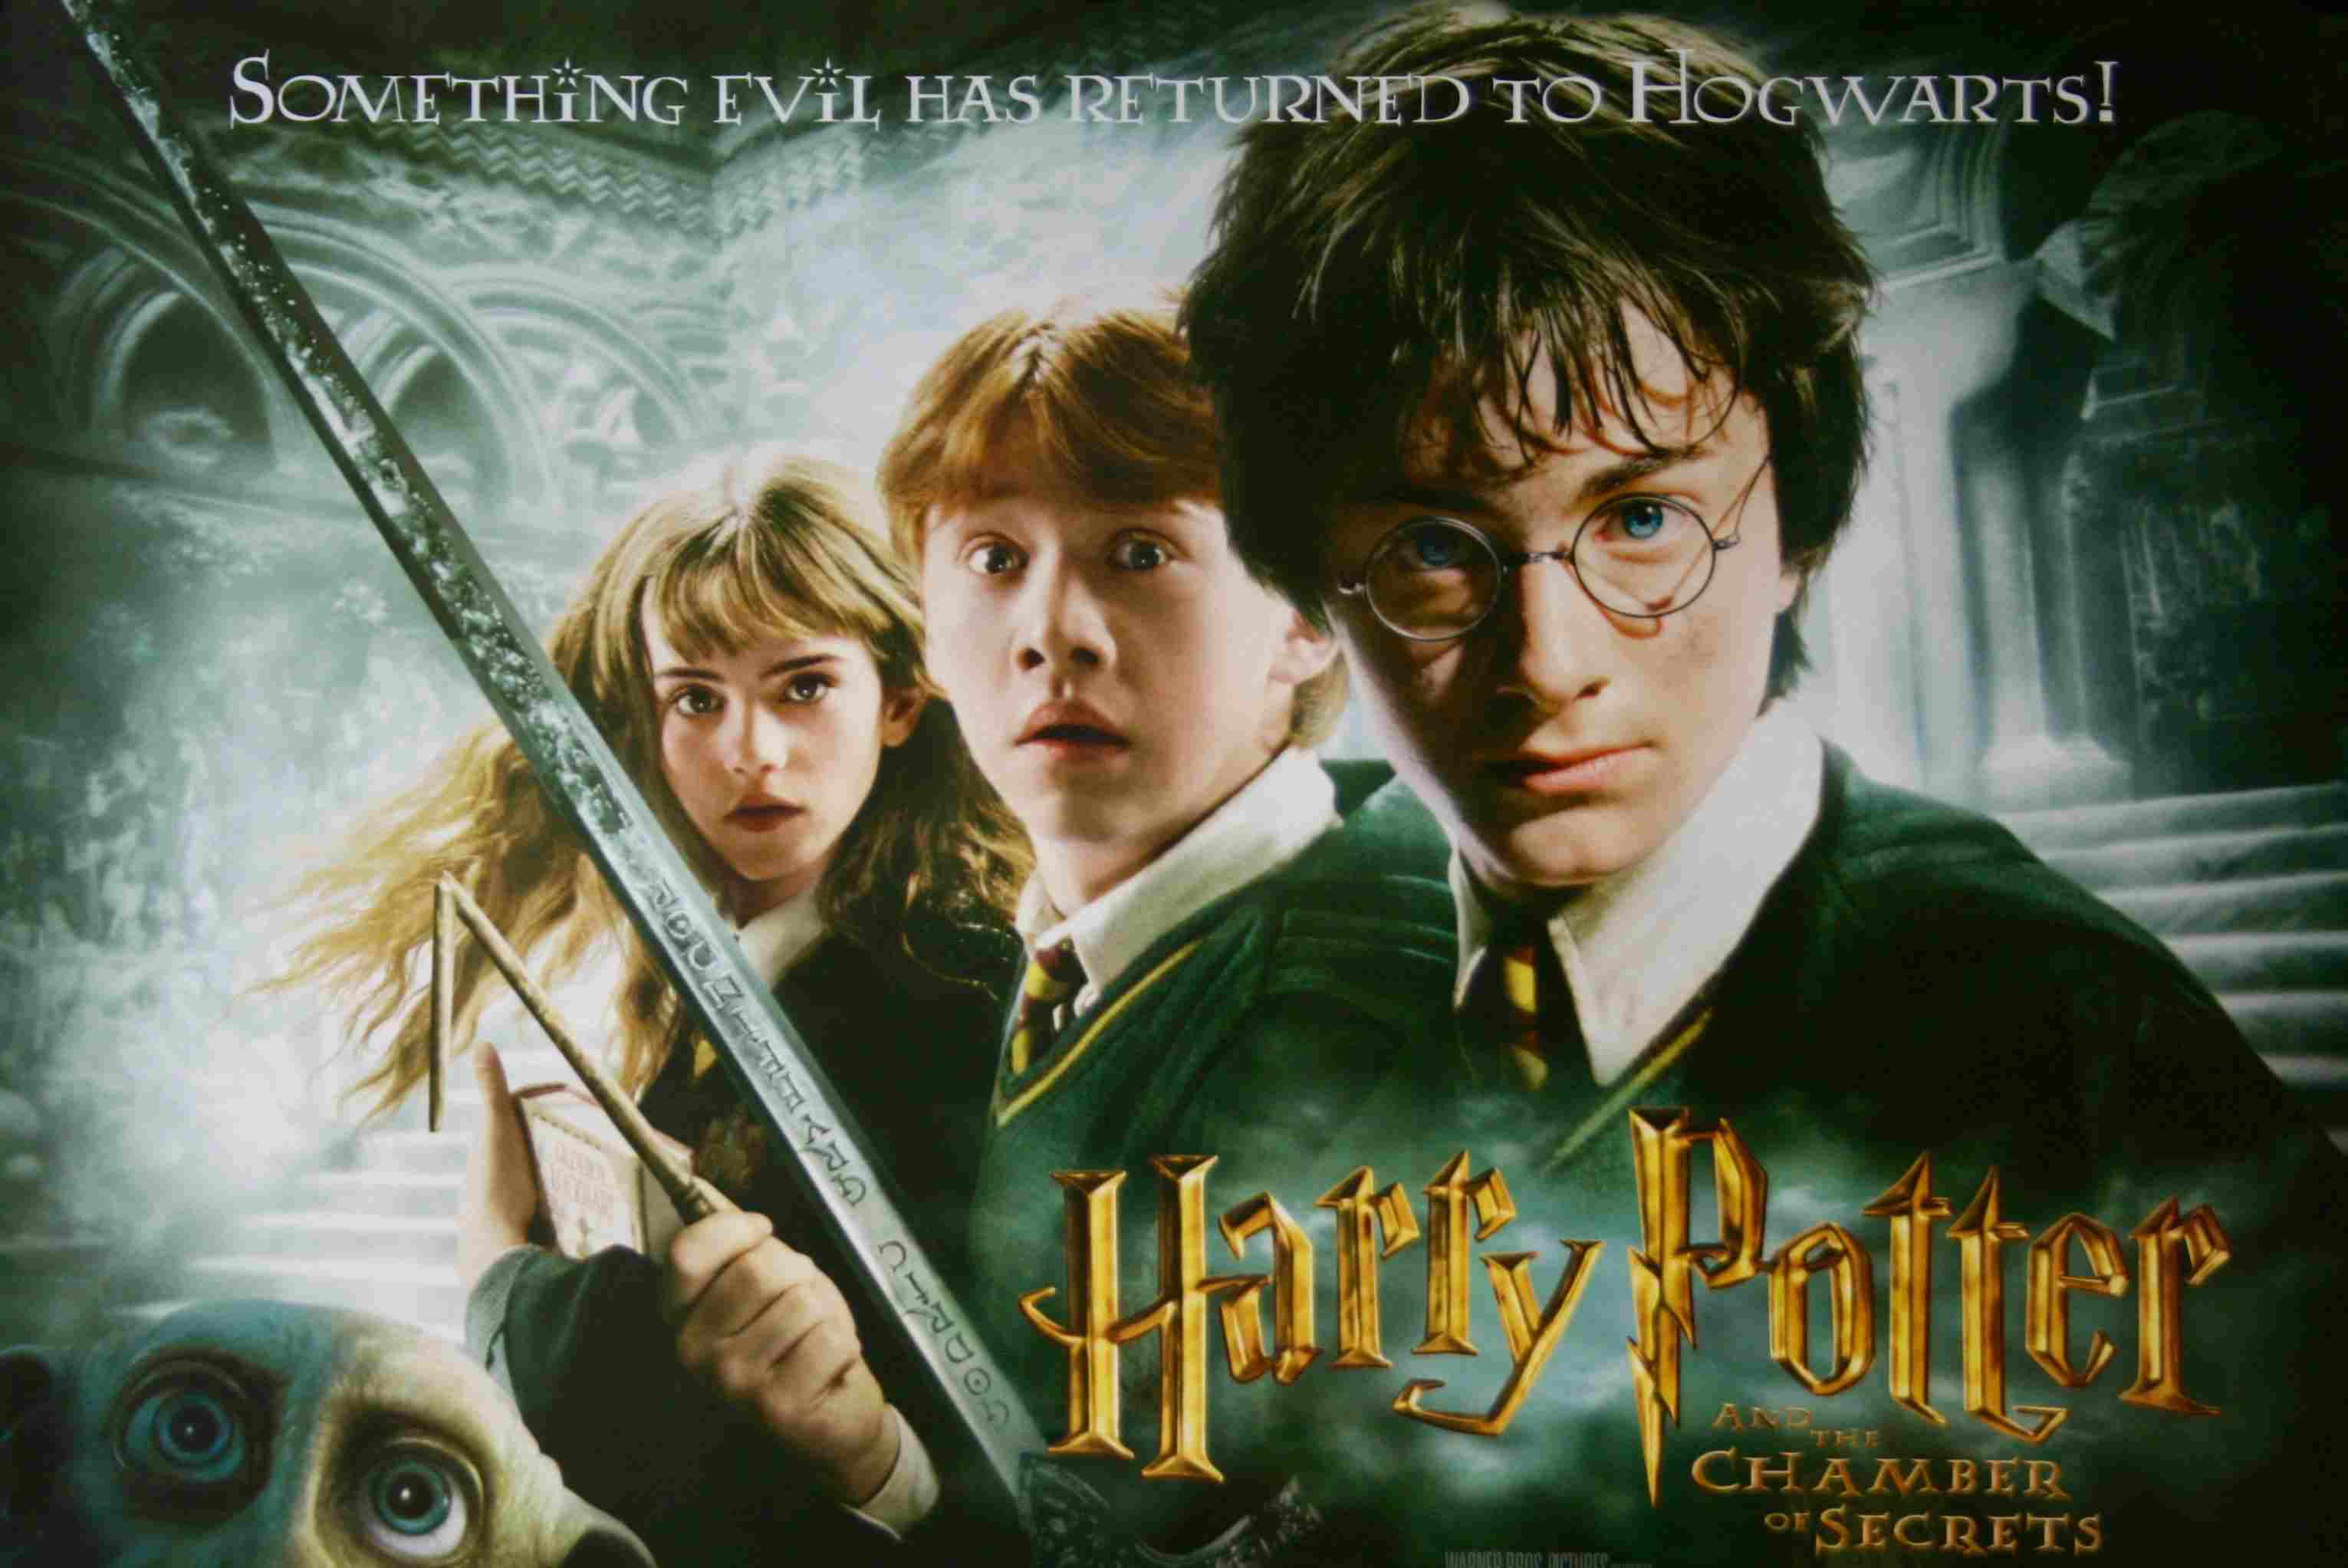 Harry Potter and the Chamber of Secrets movie poster.